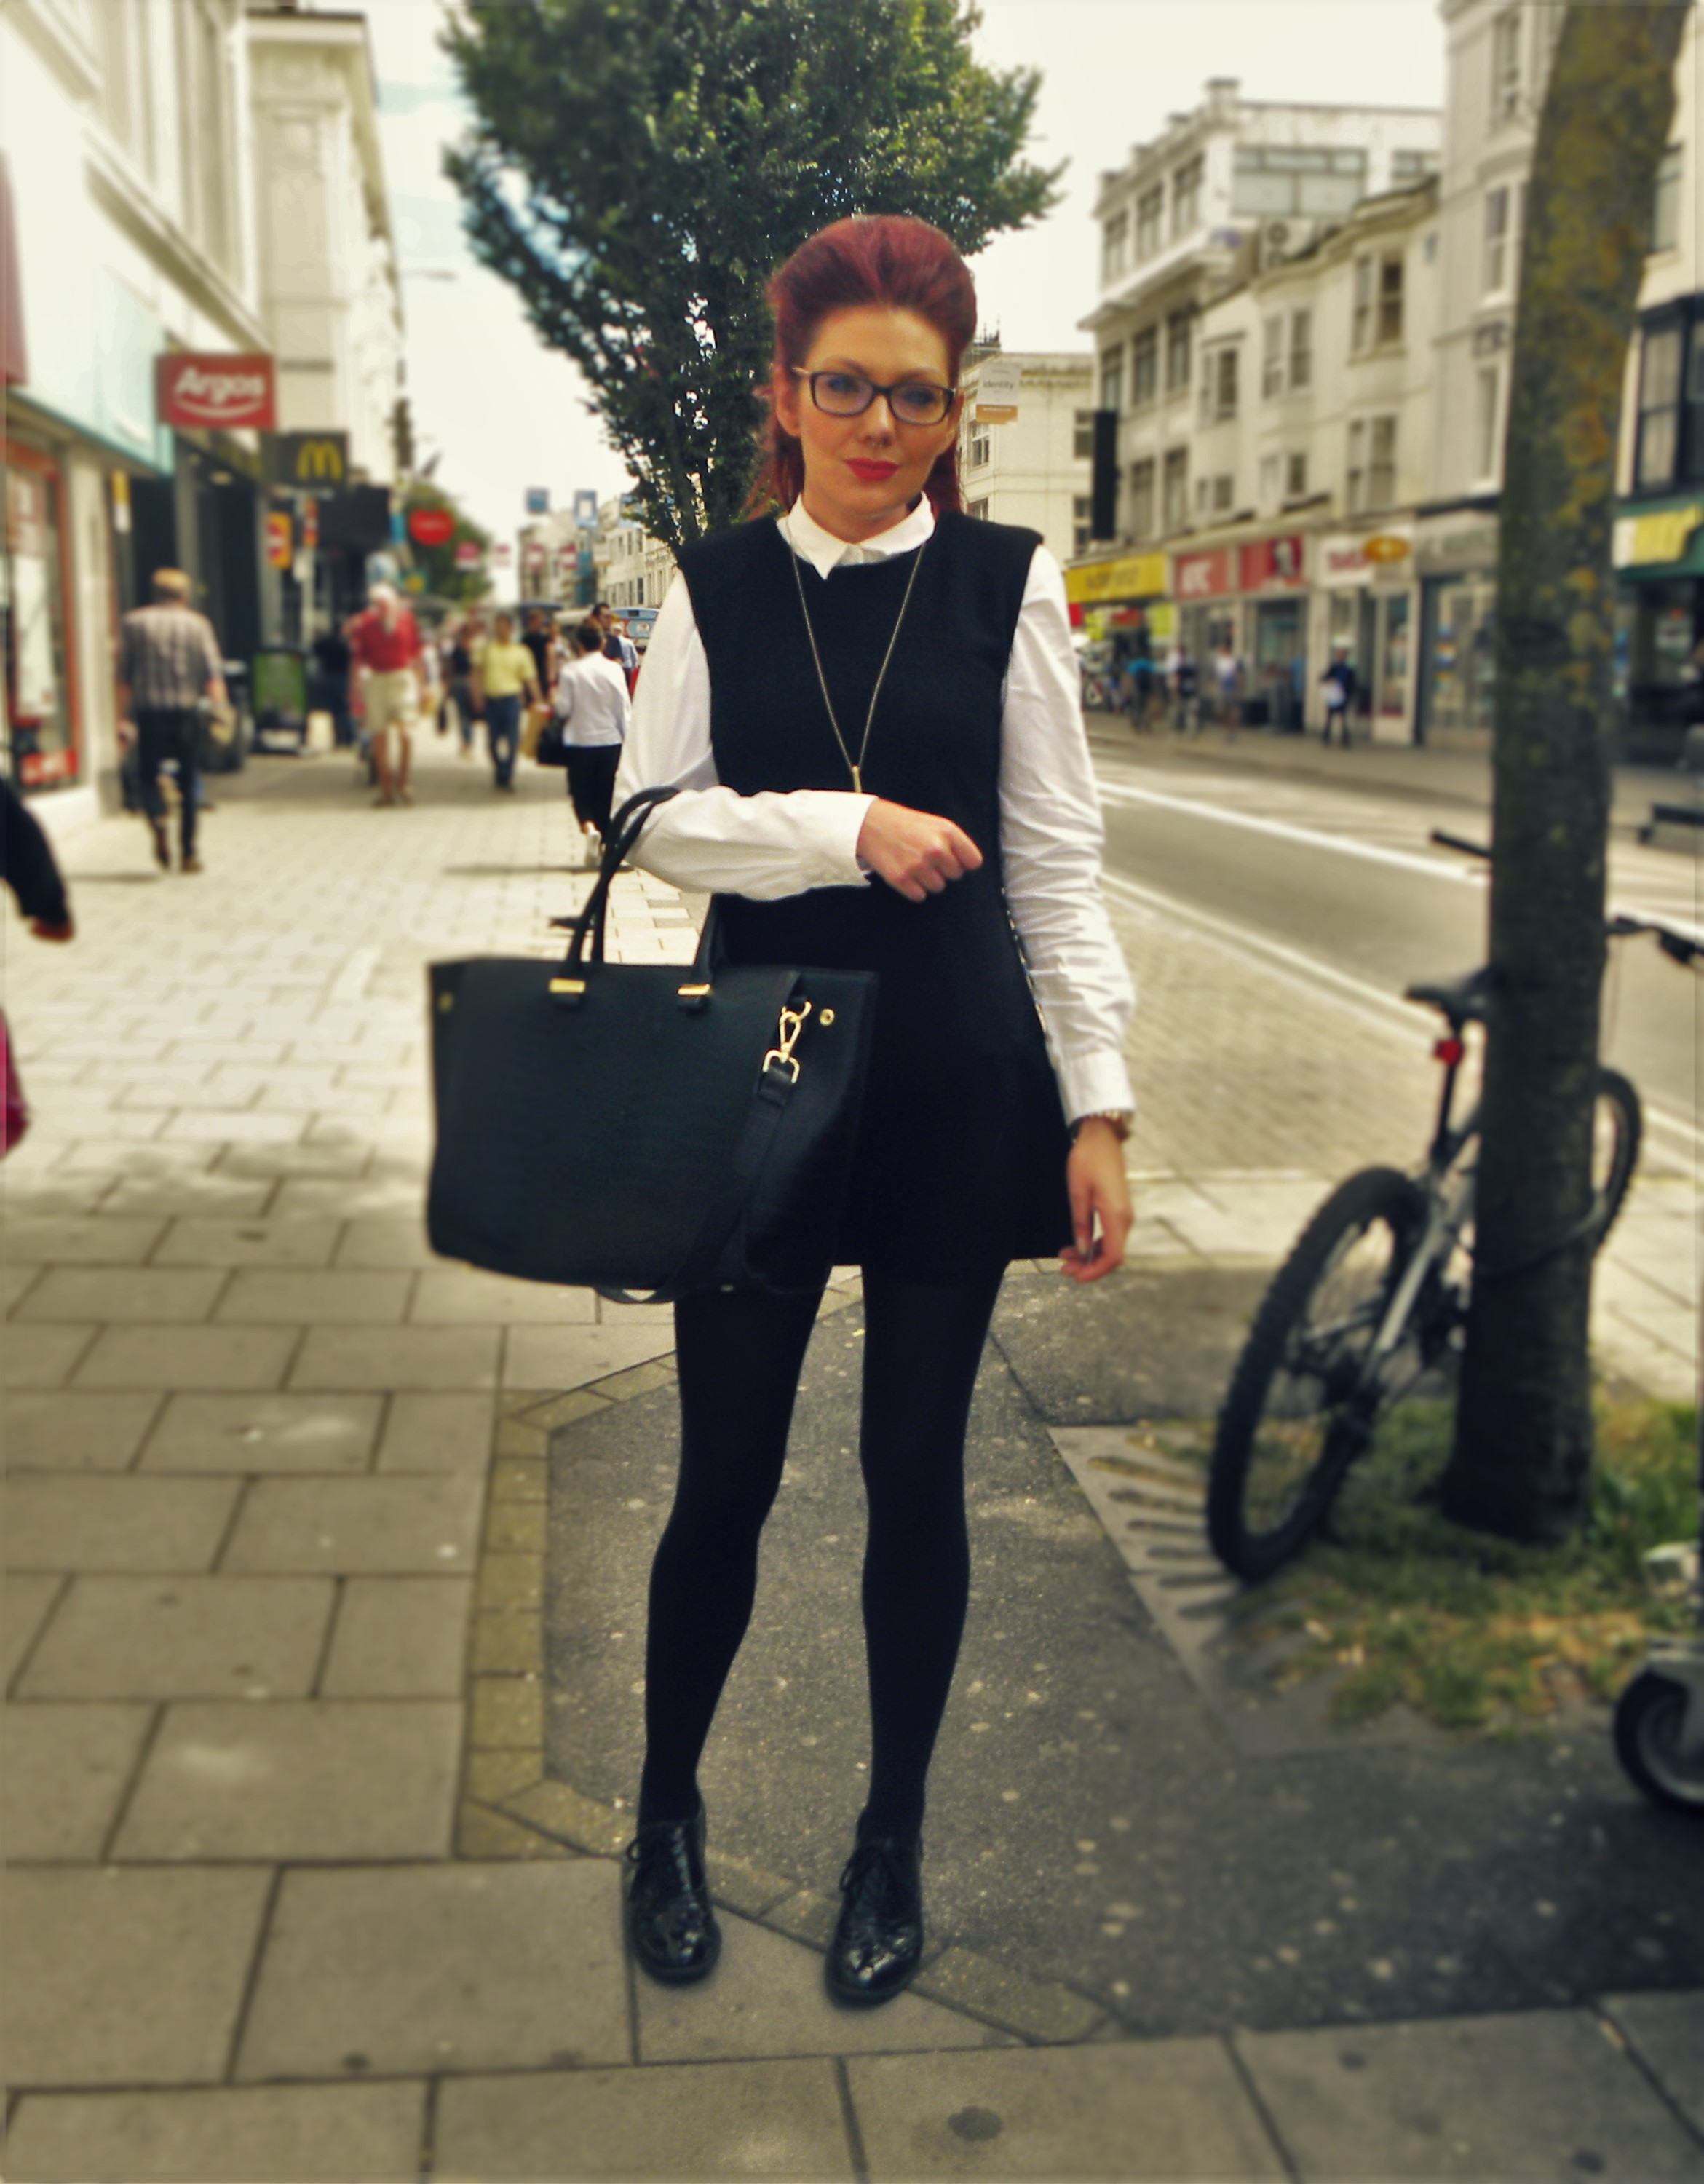 Antonia is wearing a shirt from Next, this classic black dress from New Look, bag and shoes also from New Look.